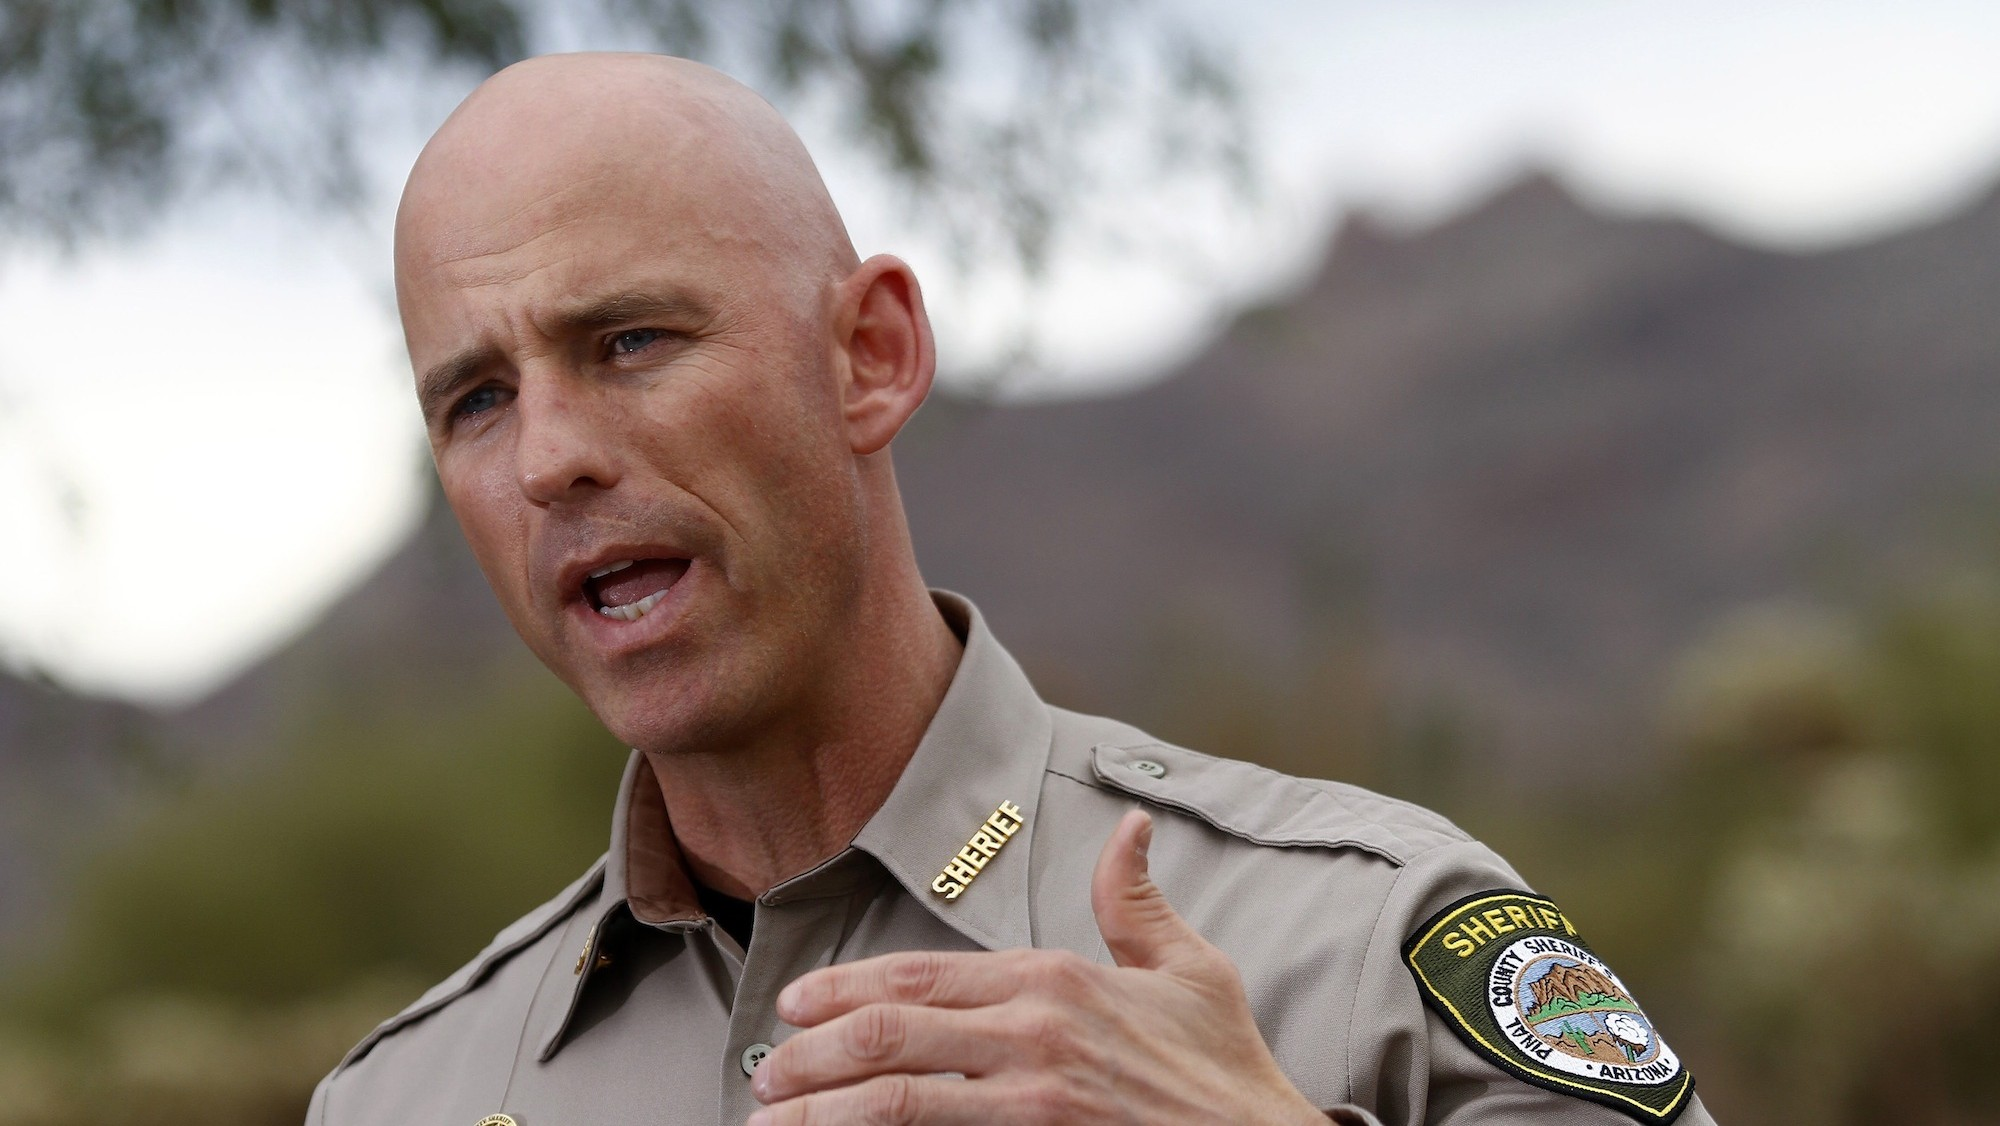 Arizona Sheriff's Warning to Hikers About 'Mexican Drug Assassins' Is Probably Bullshit